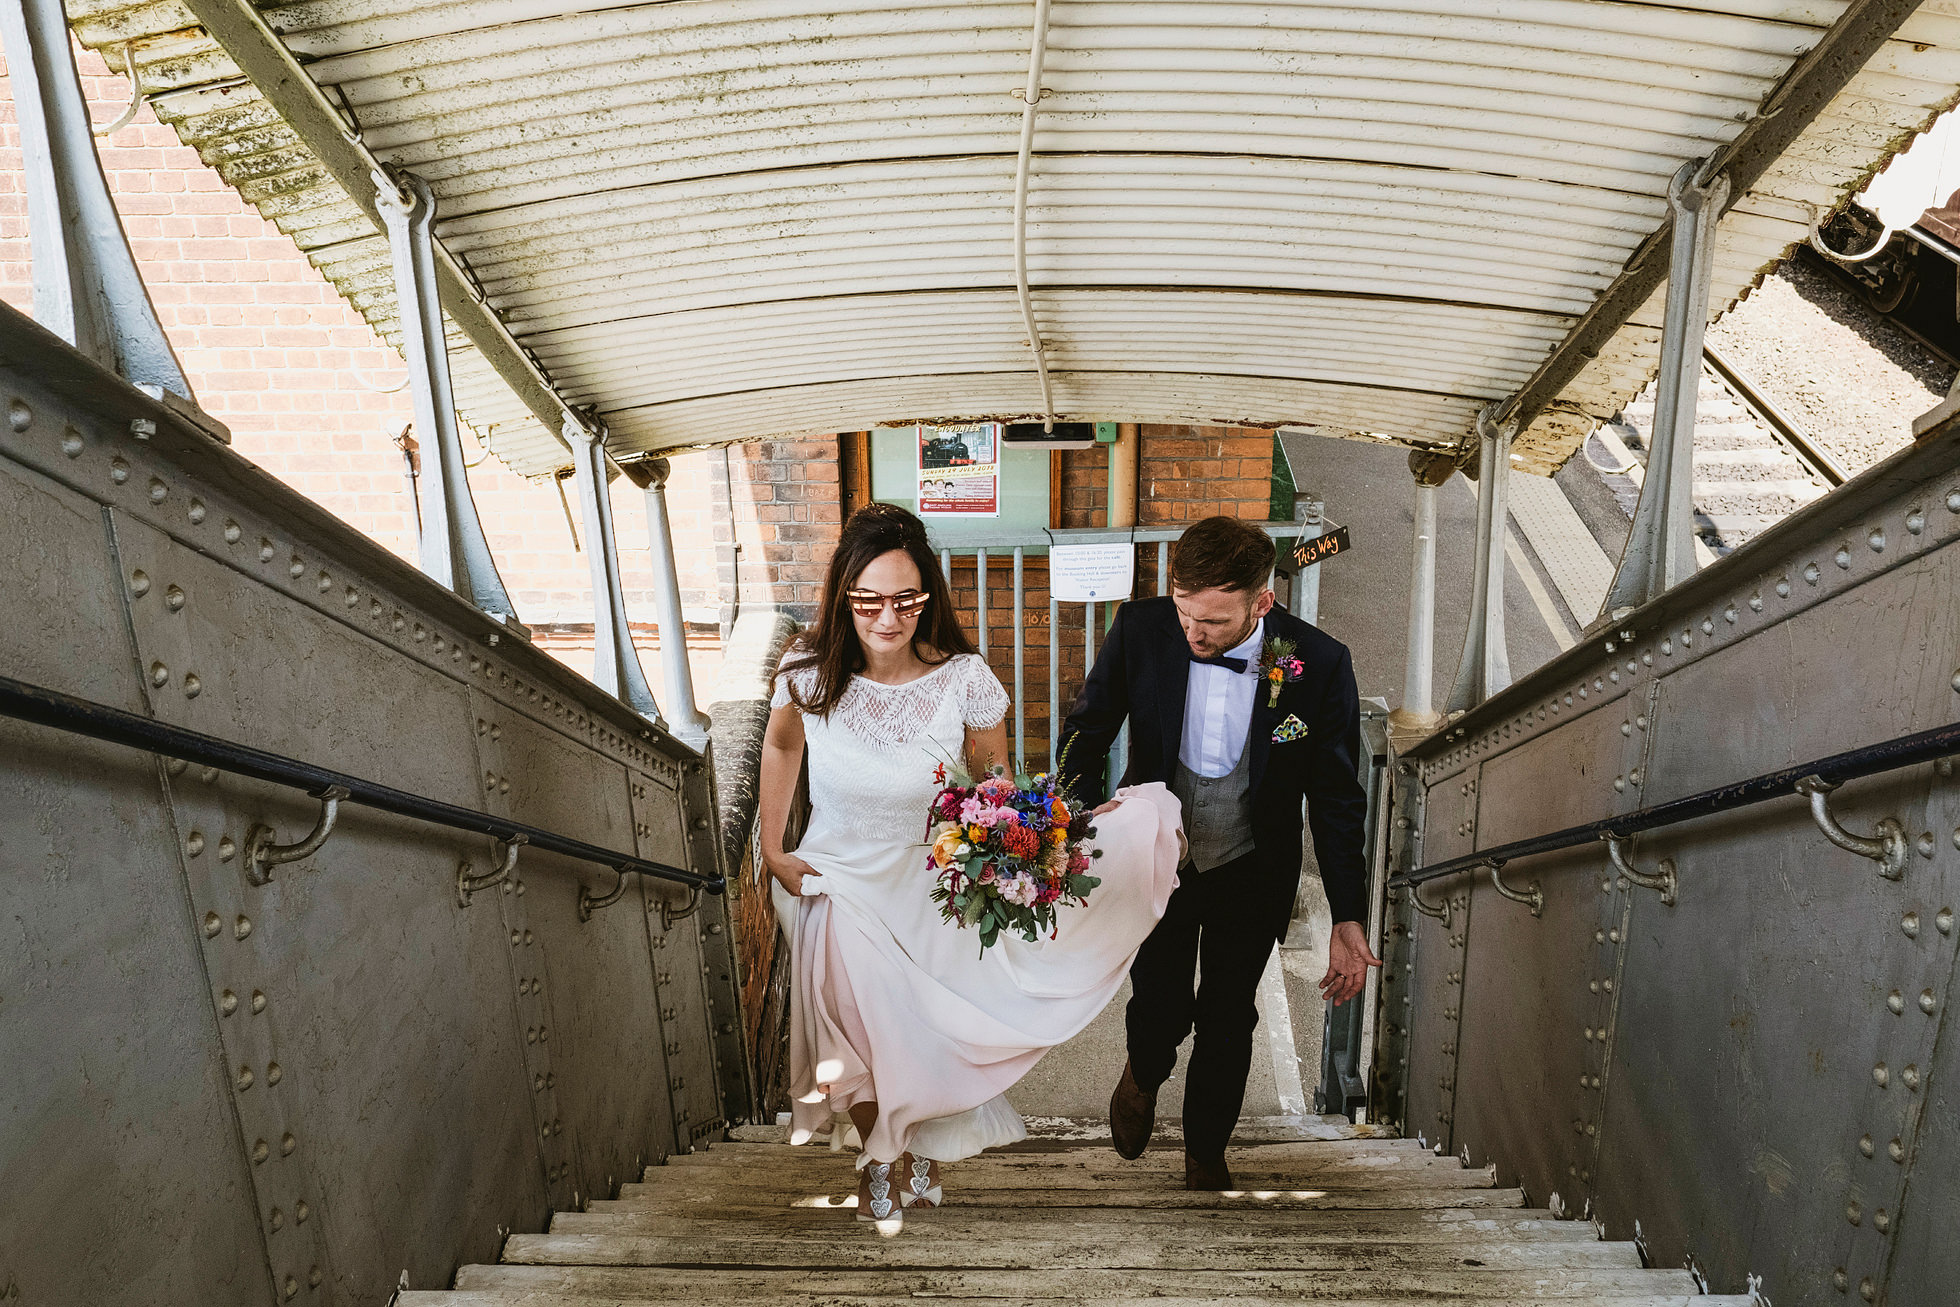 east anglian railway museum wedding photography